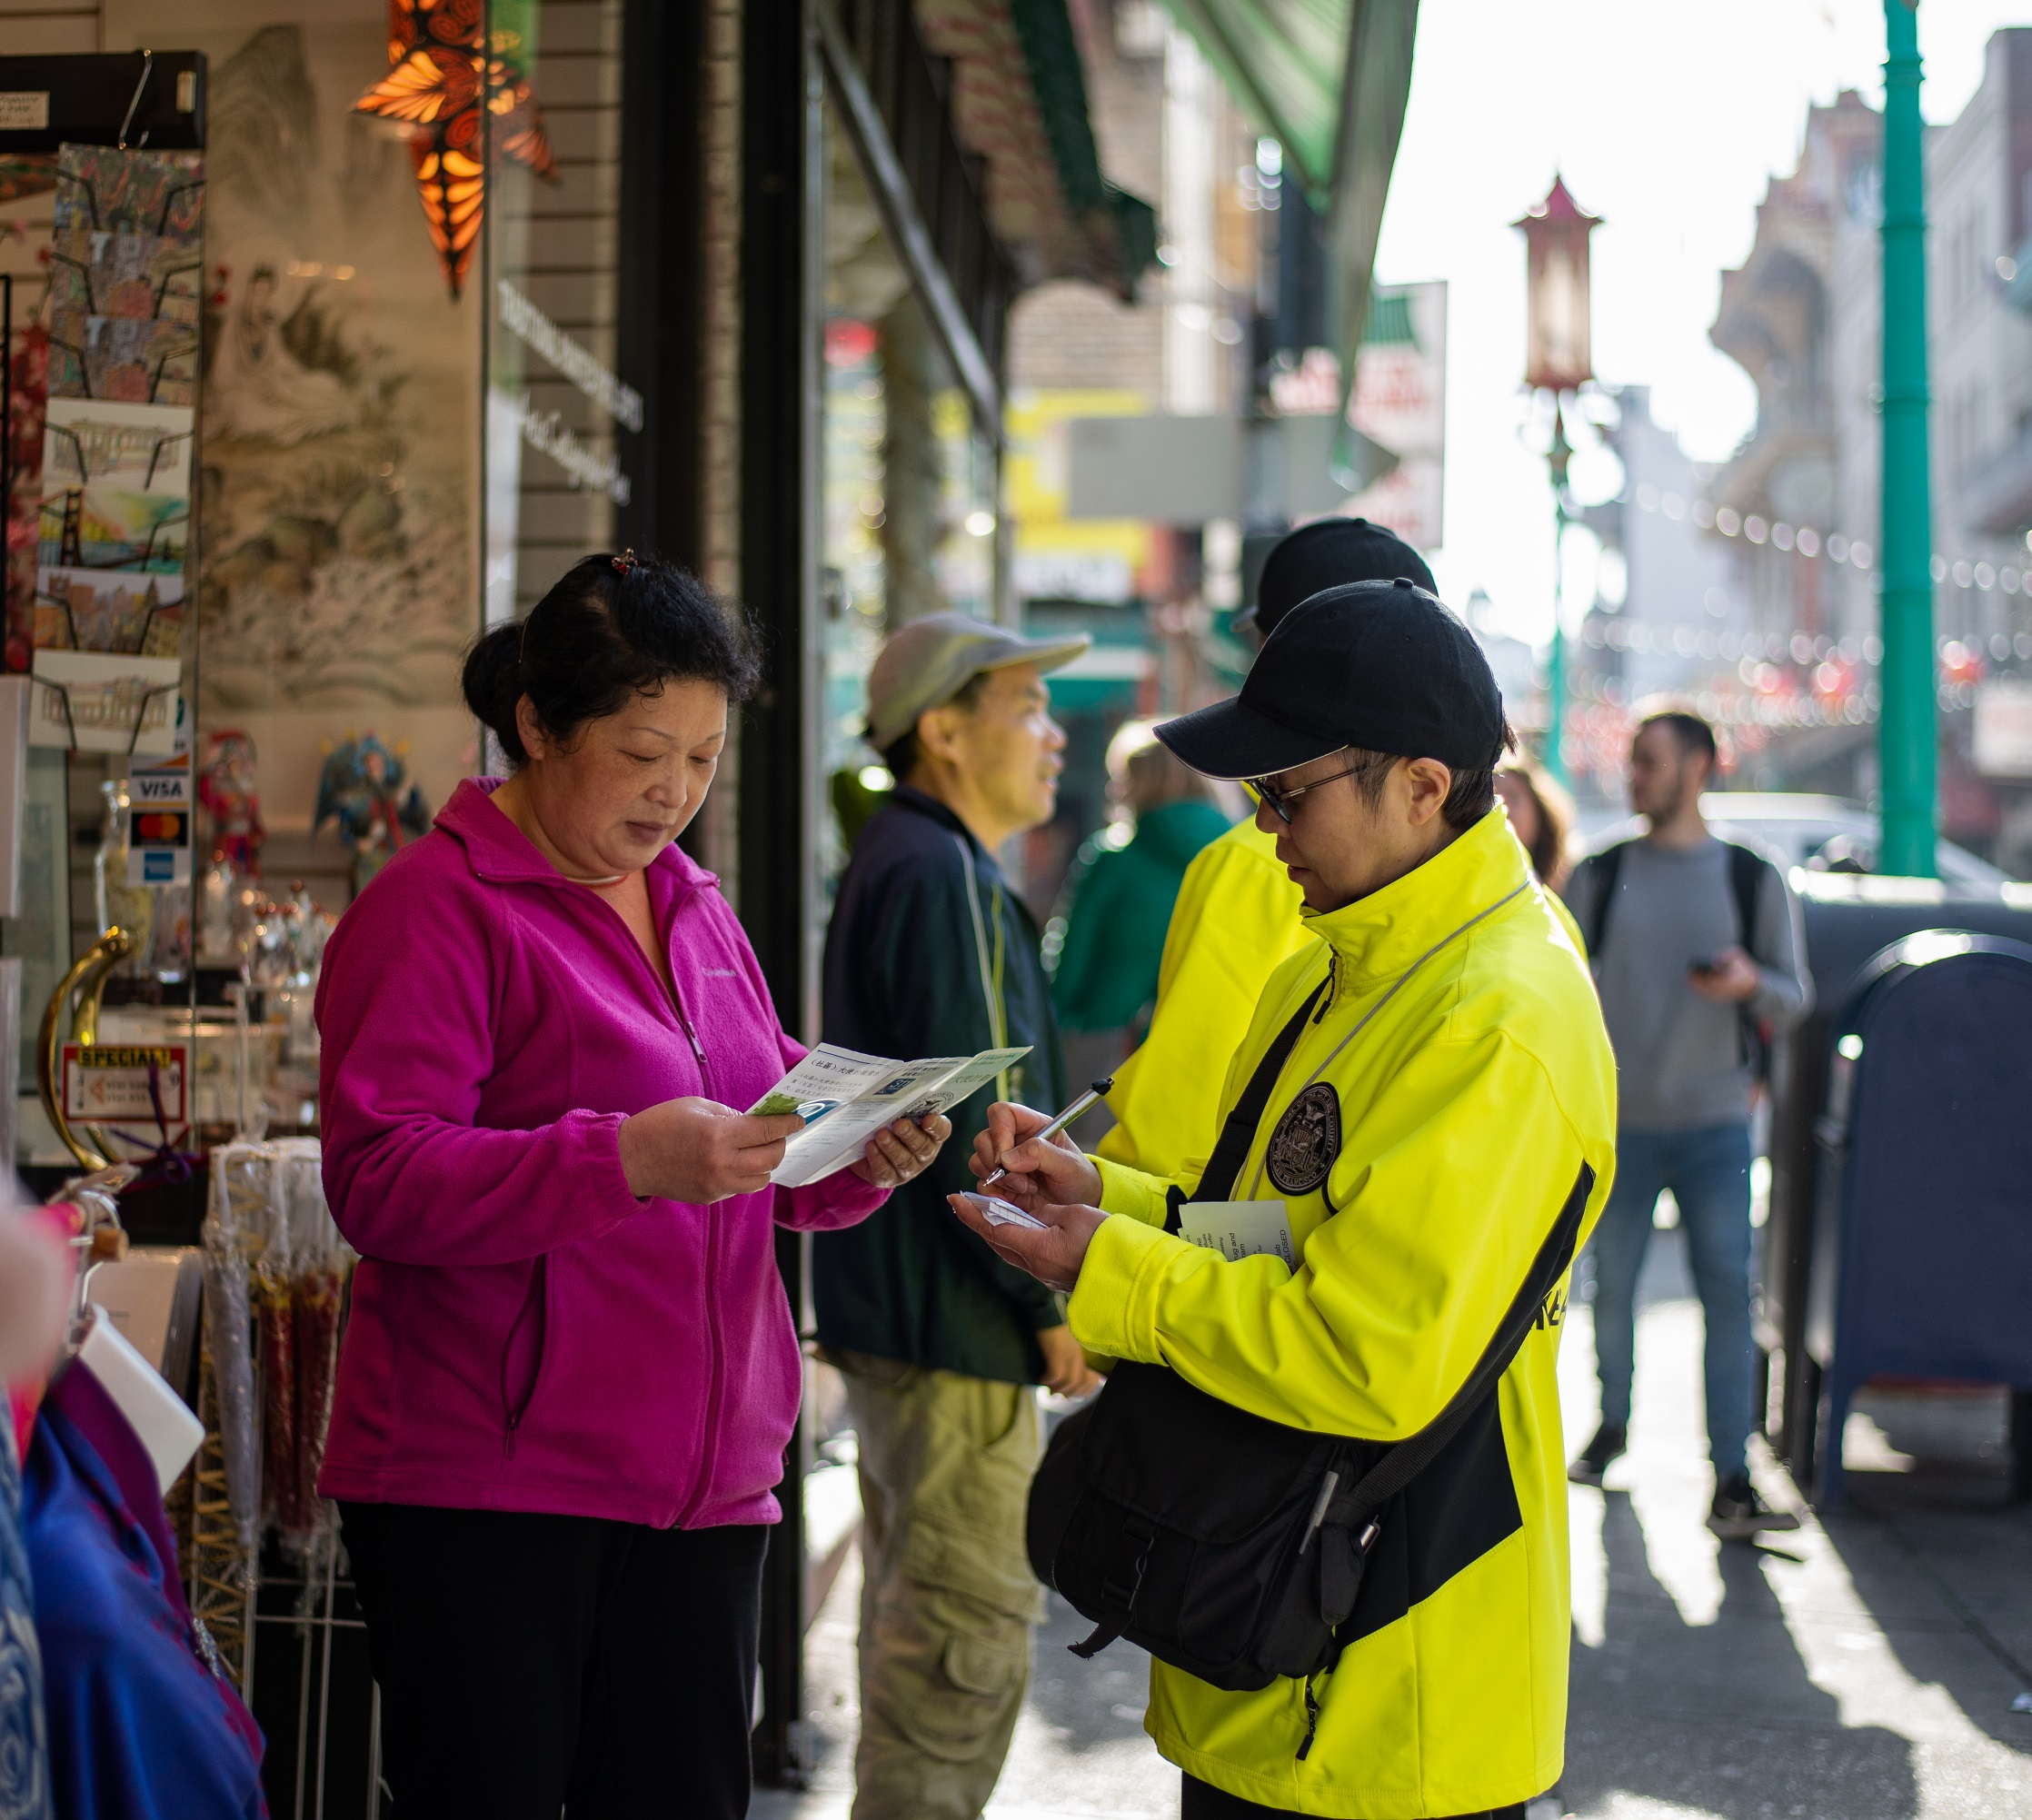 A Community Ambassadors providers information to a store owner in Chinatown